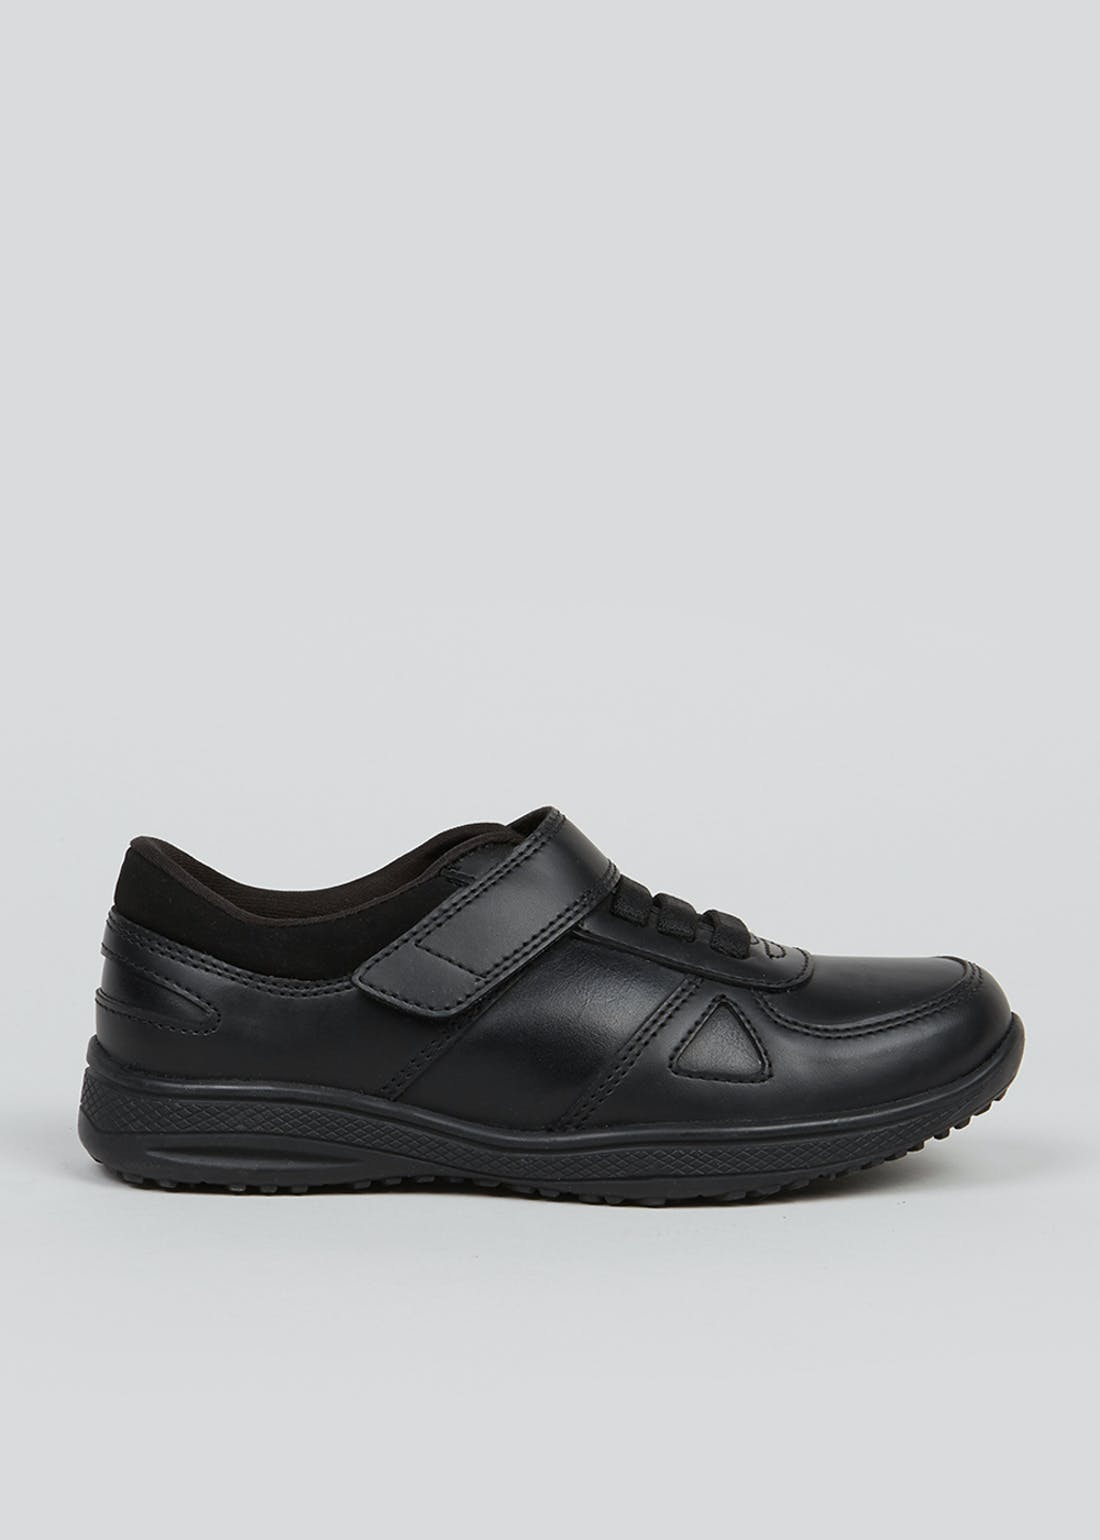 Boys Black Leather School Trainers (Younger 8-Older 6)